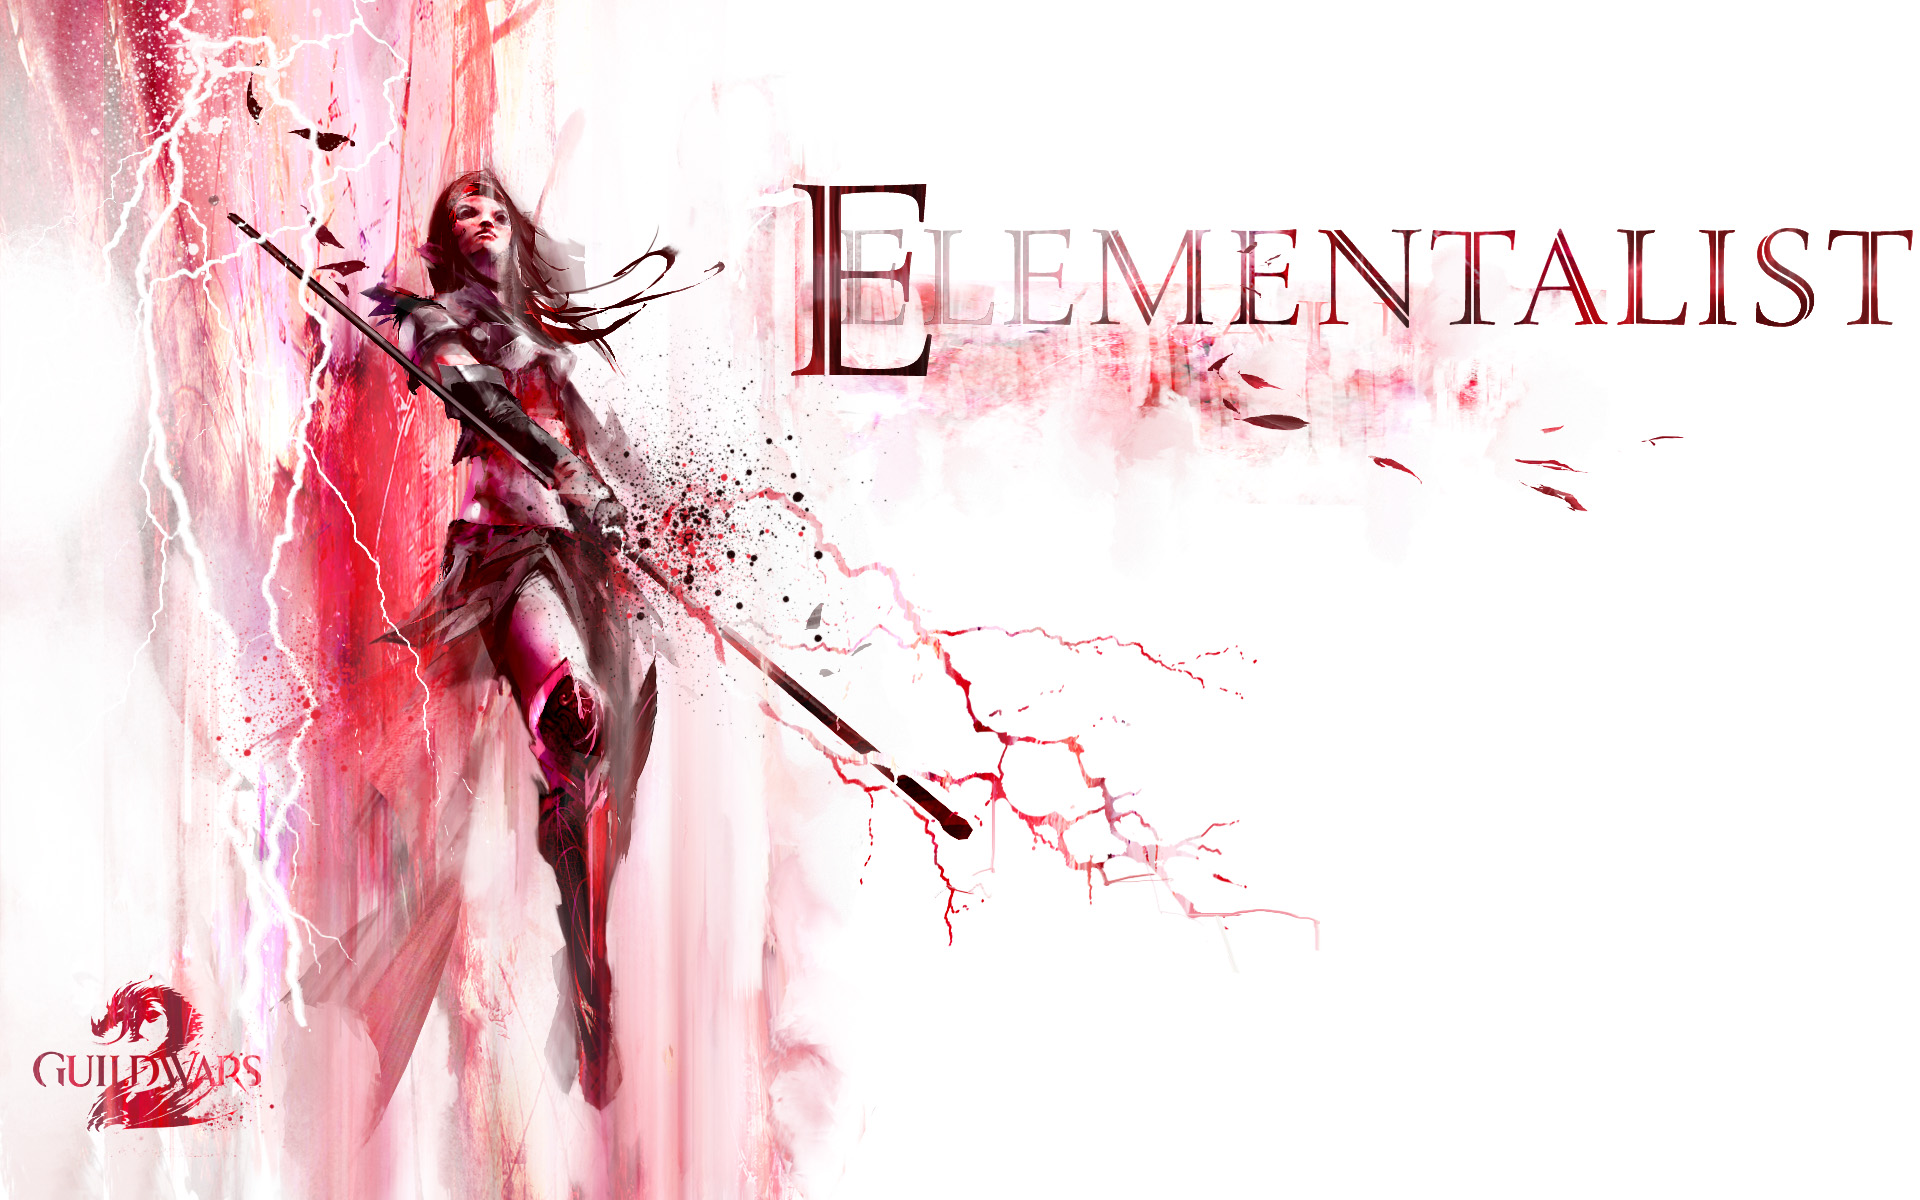 Guild Wars 2 Elementalist Wallpaper